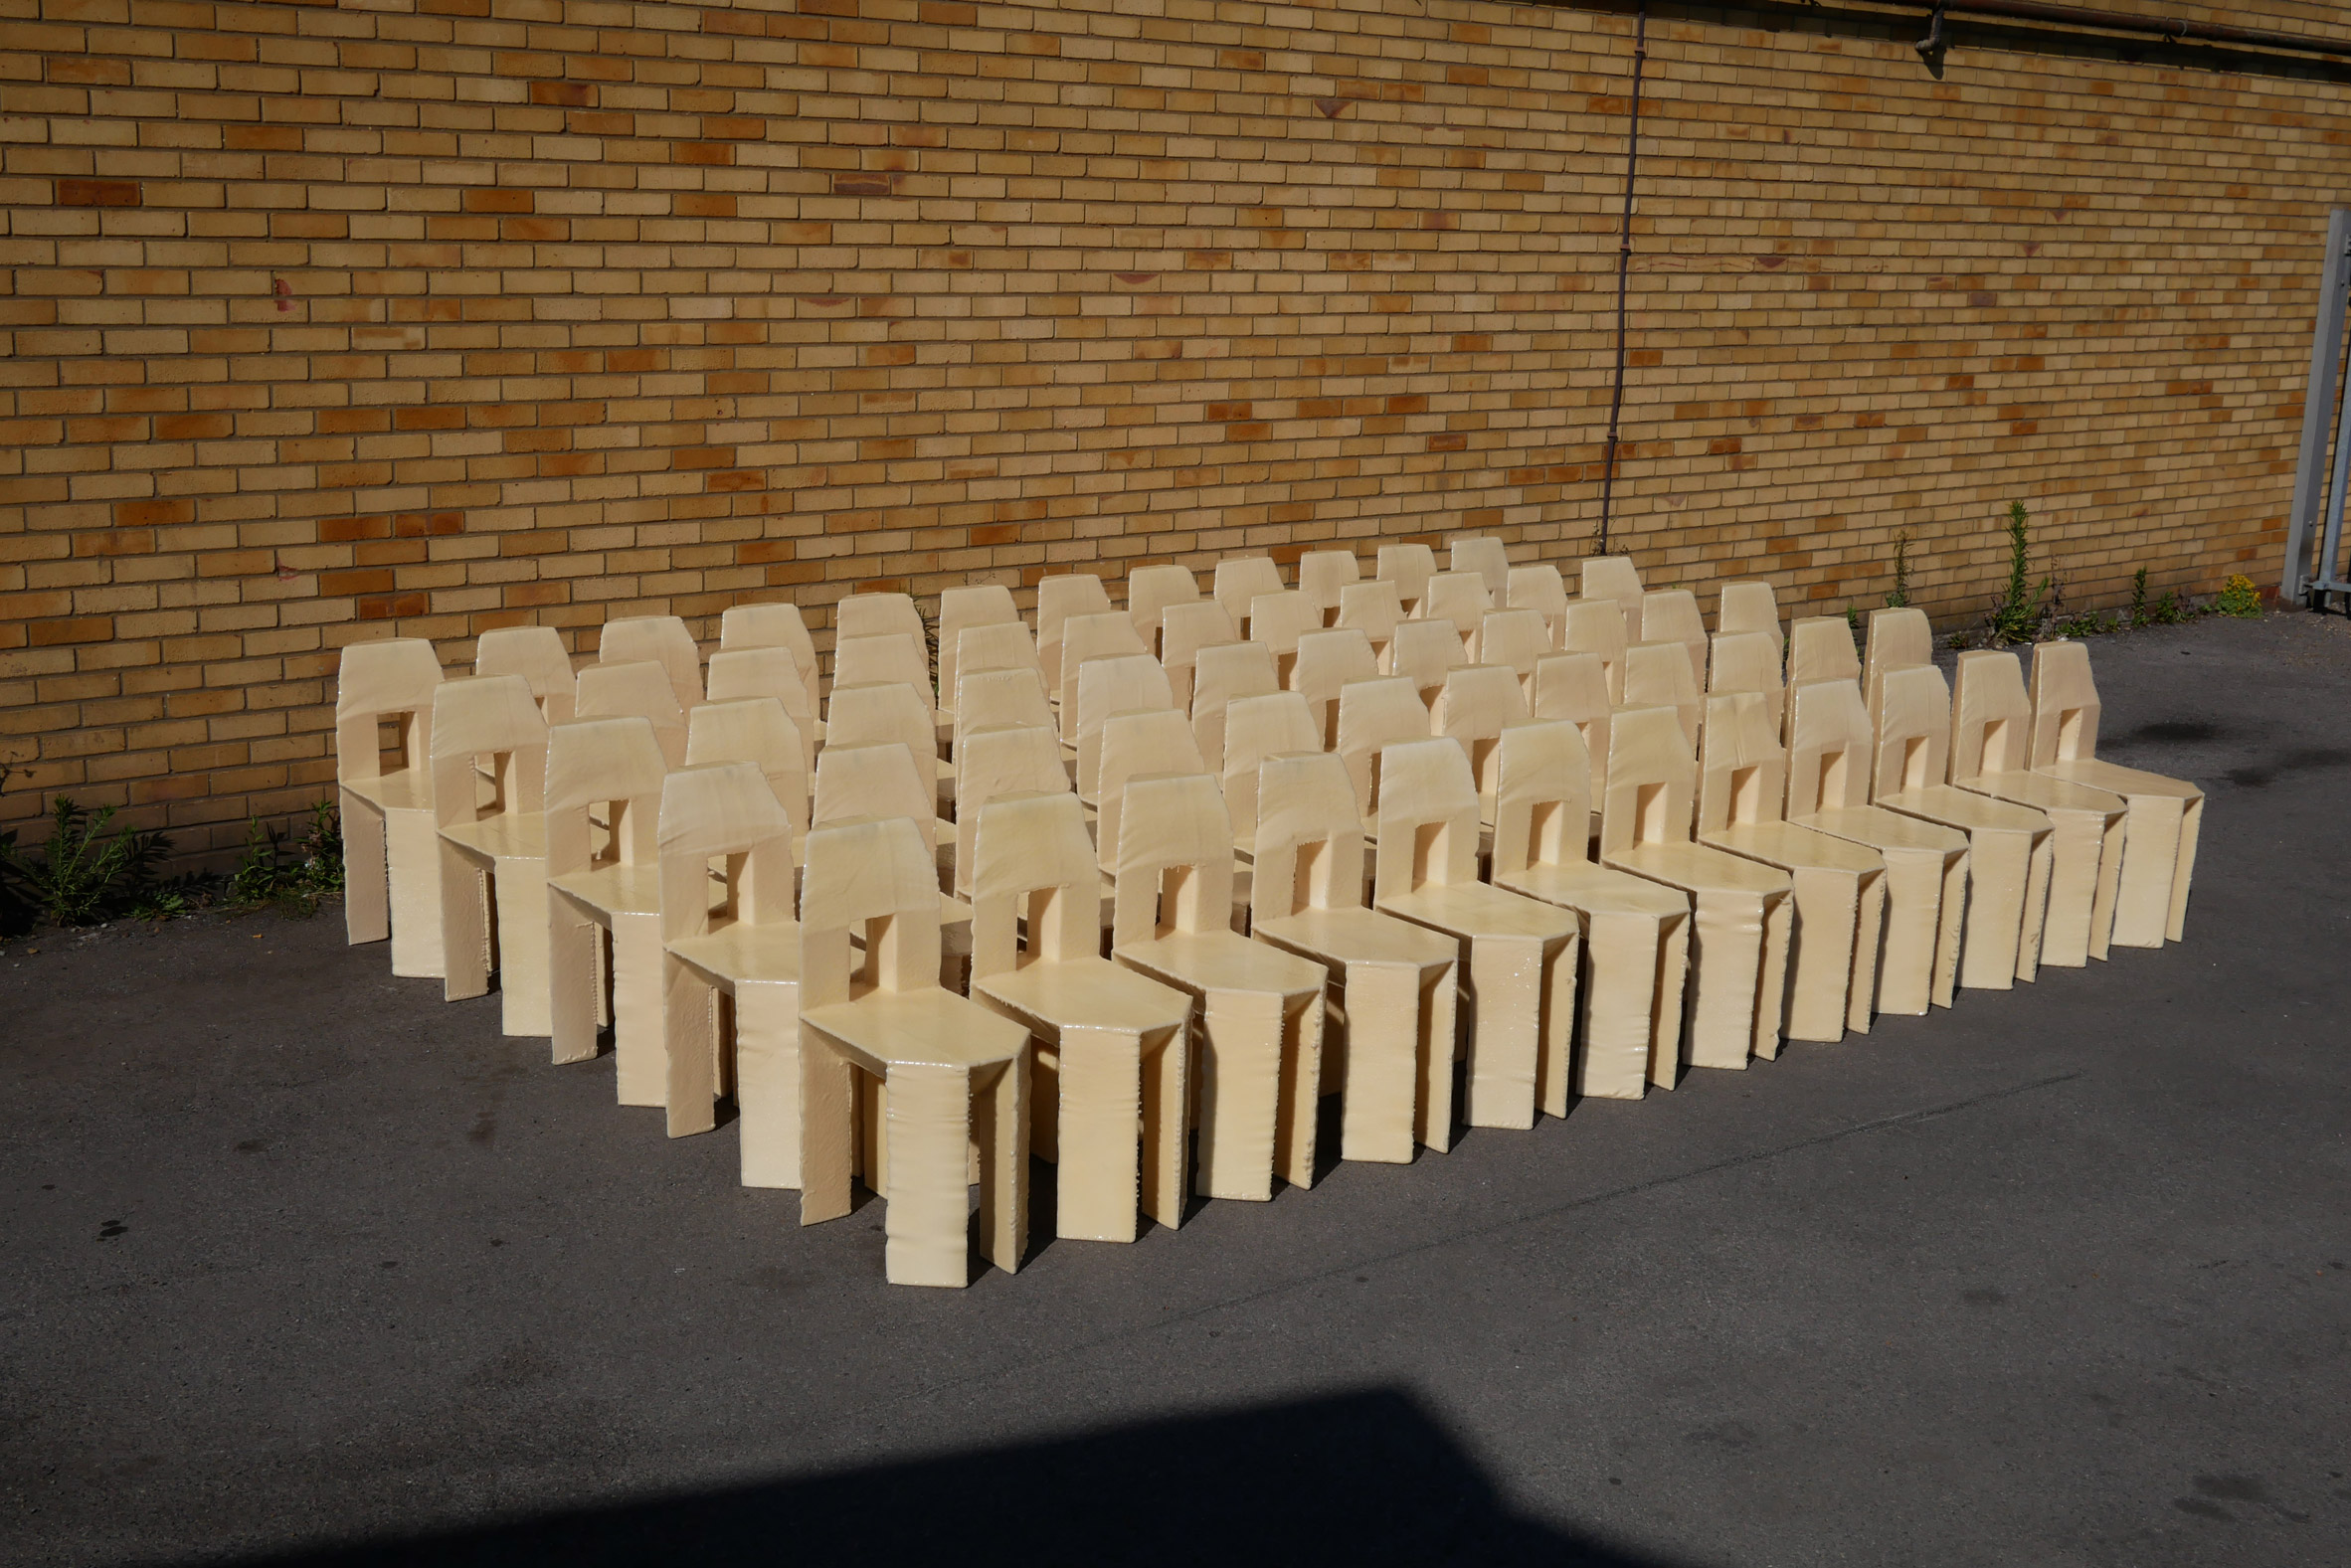 Lamb crafted the chairs over three days